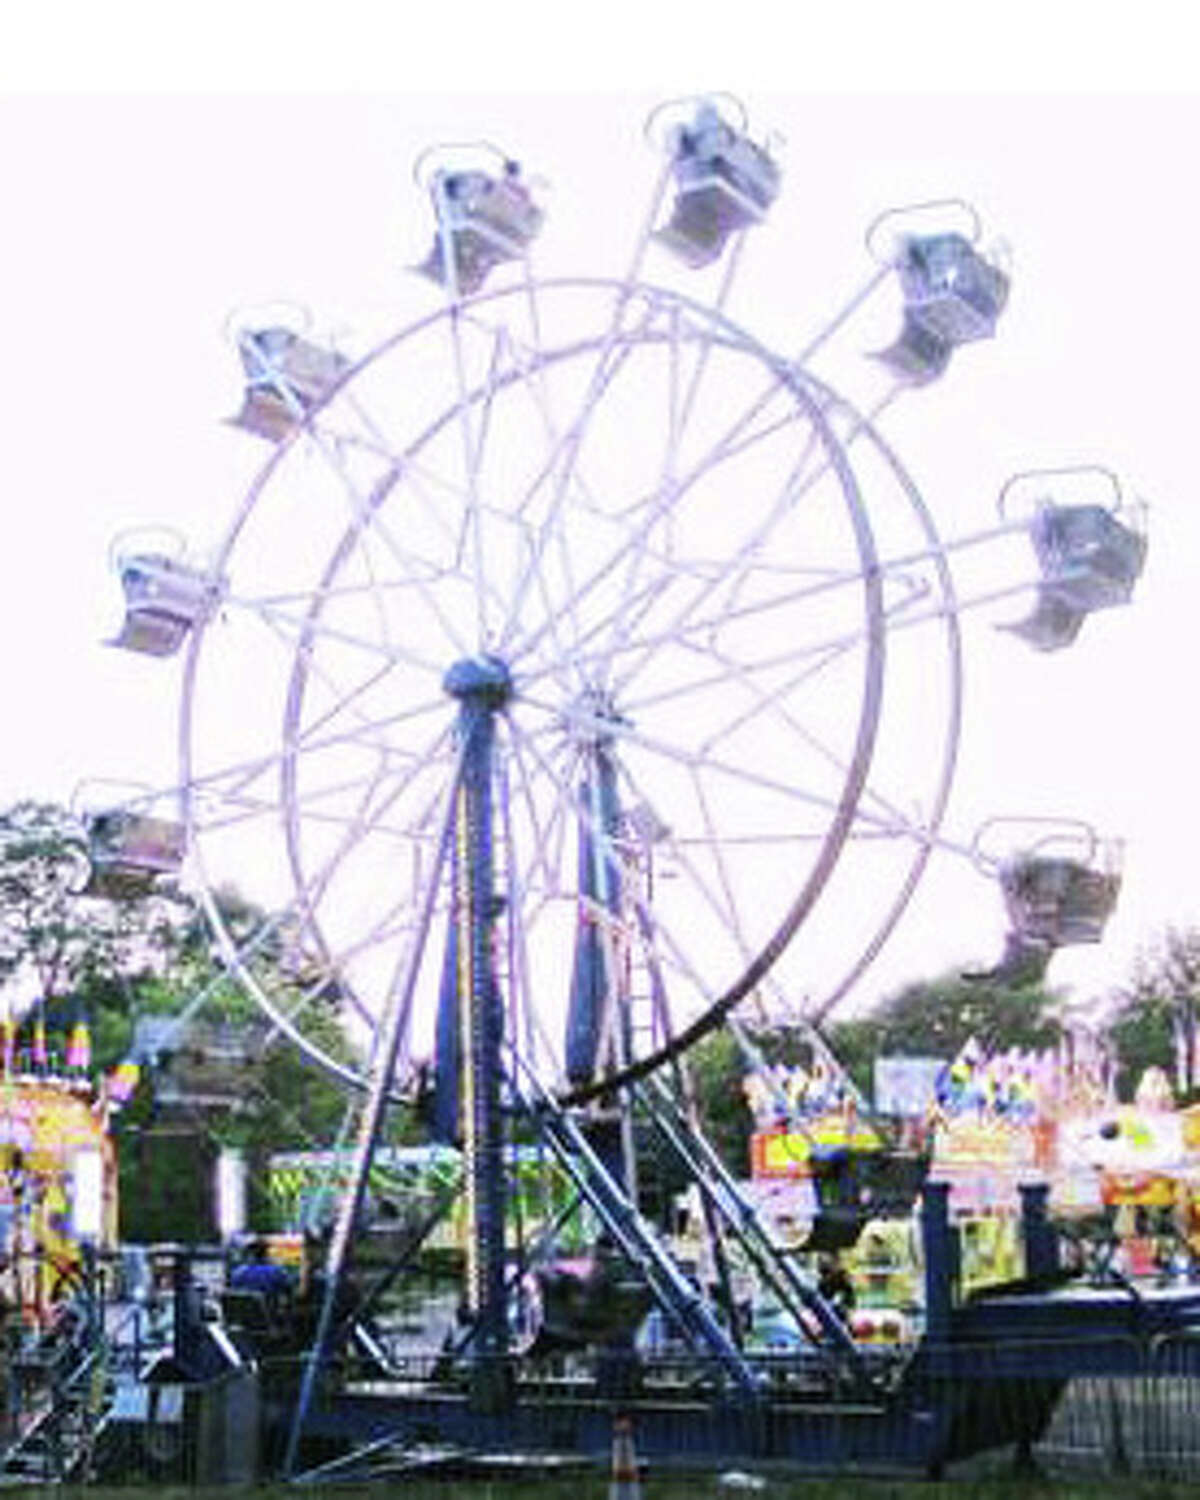 A Ferris wheel is traditionally one of the most popular rides at the Yankee Doodle Fair, sponsored by the Westport Women's Club, from June 13-16.